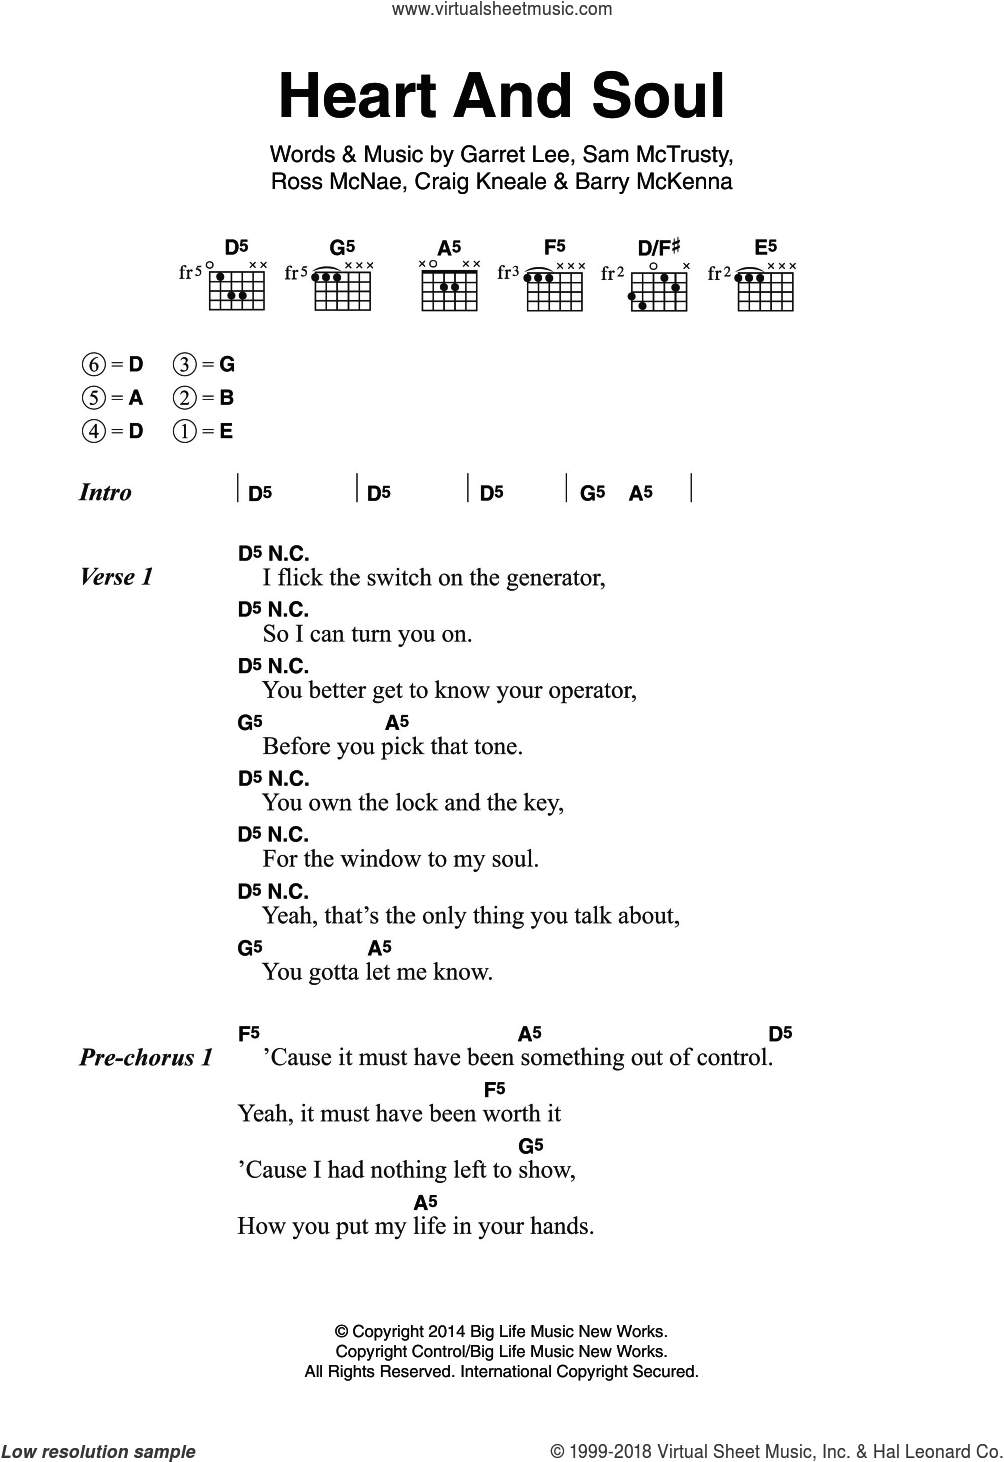 Atlantic - Heart And Soul sheet music for guitar (chords) [PDF]